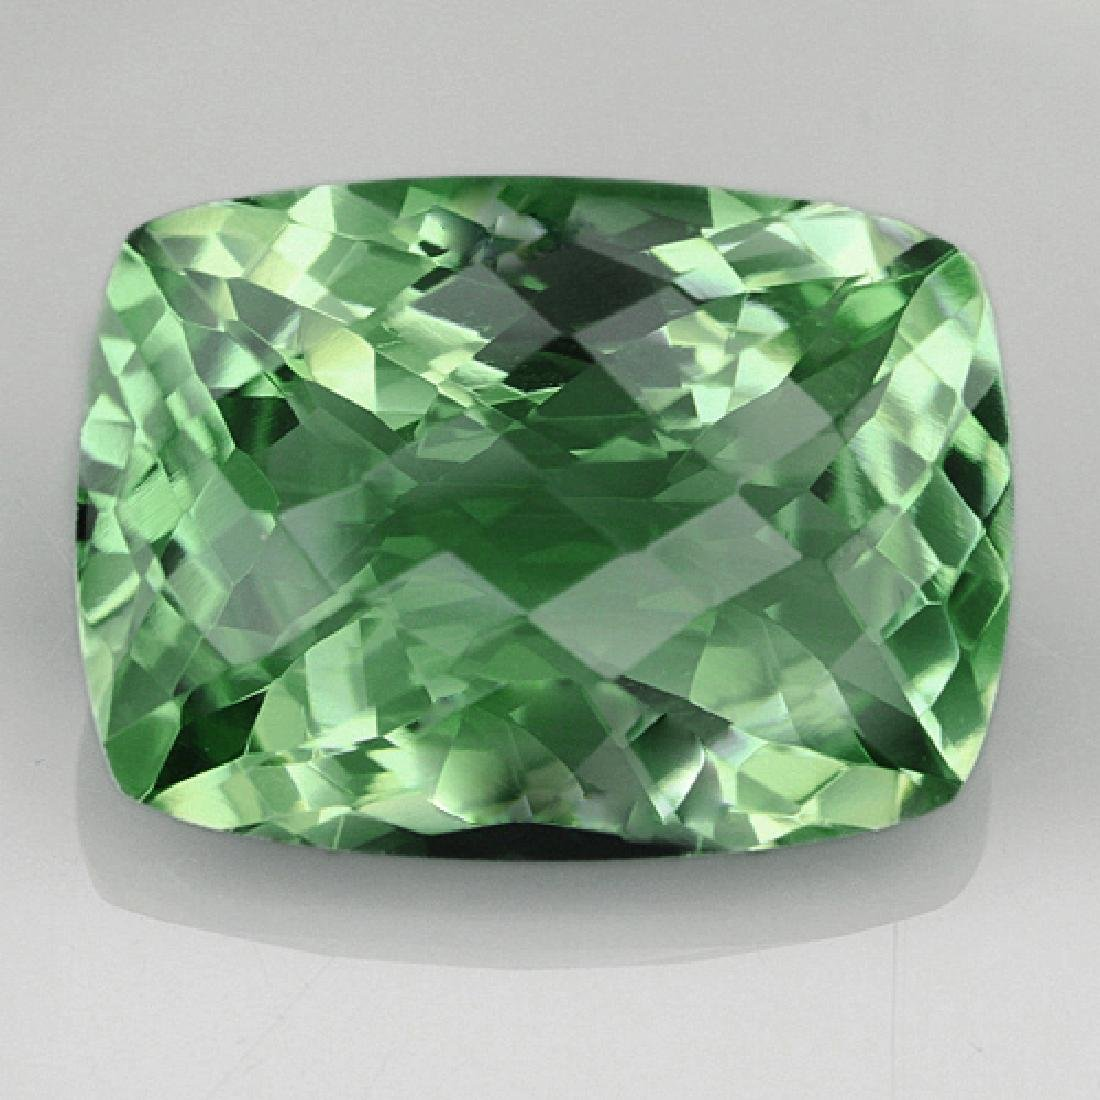 Natural Healing Green Color Amethyst 28.15 Cts - VVS